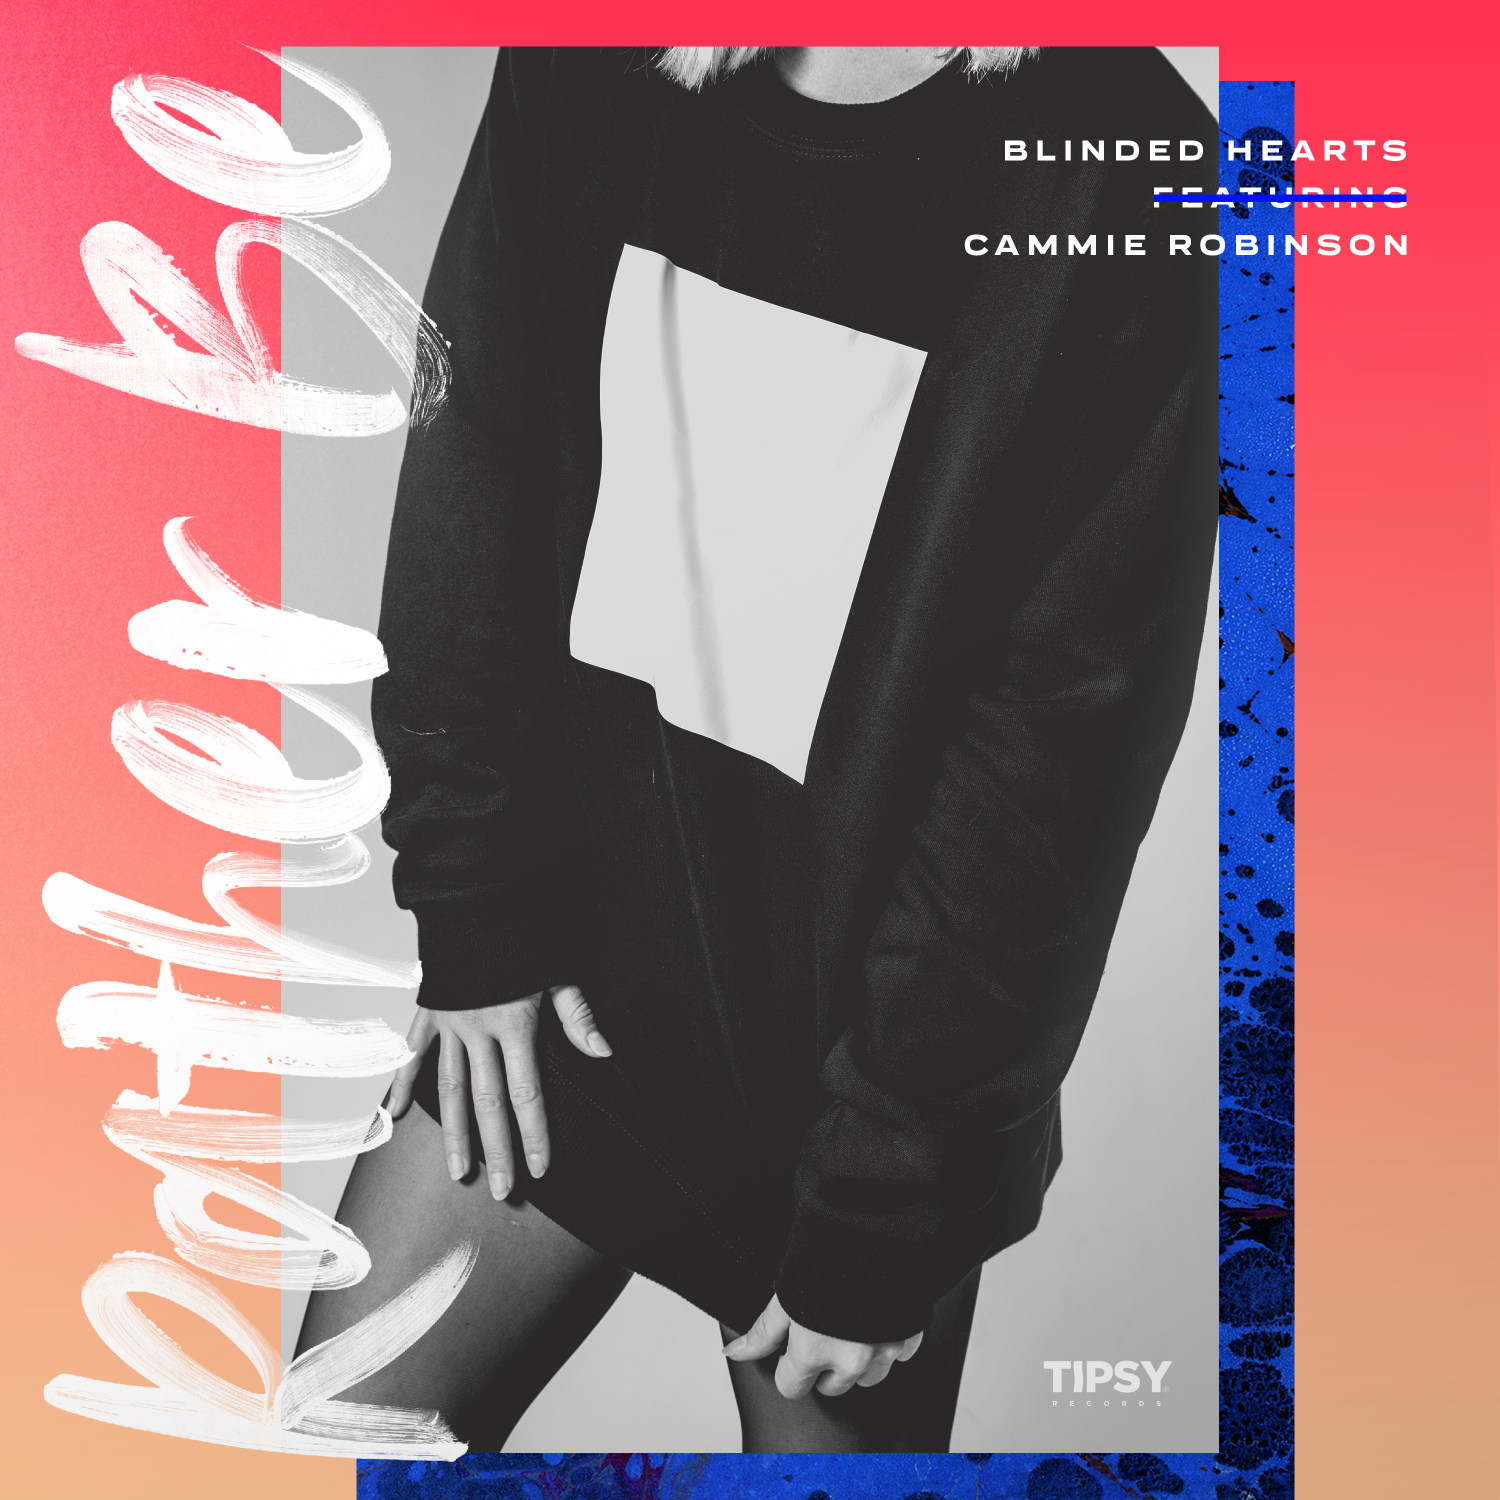 Blinded Hearts & Cammie Robinson - Rather Be (feat. Cammie Robinson) (Original Mix)